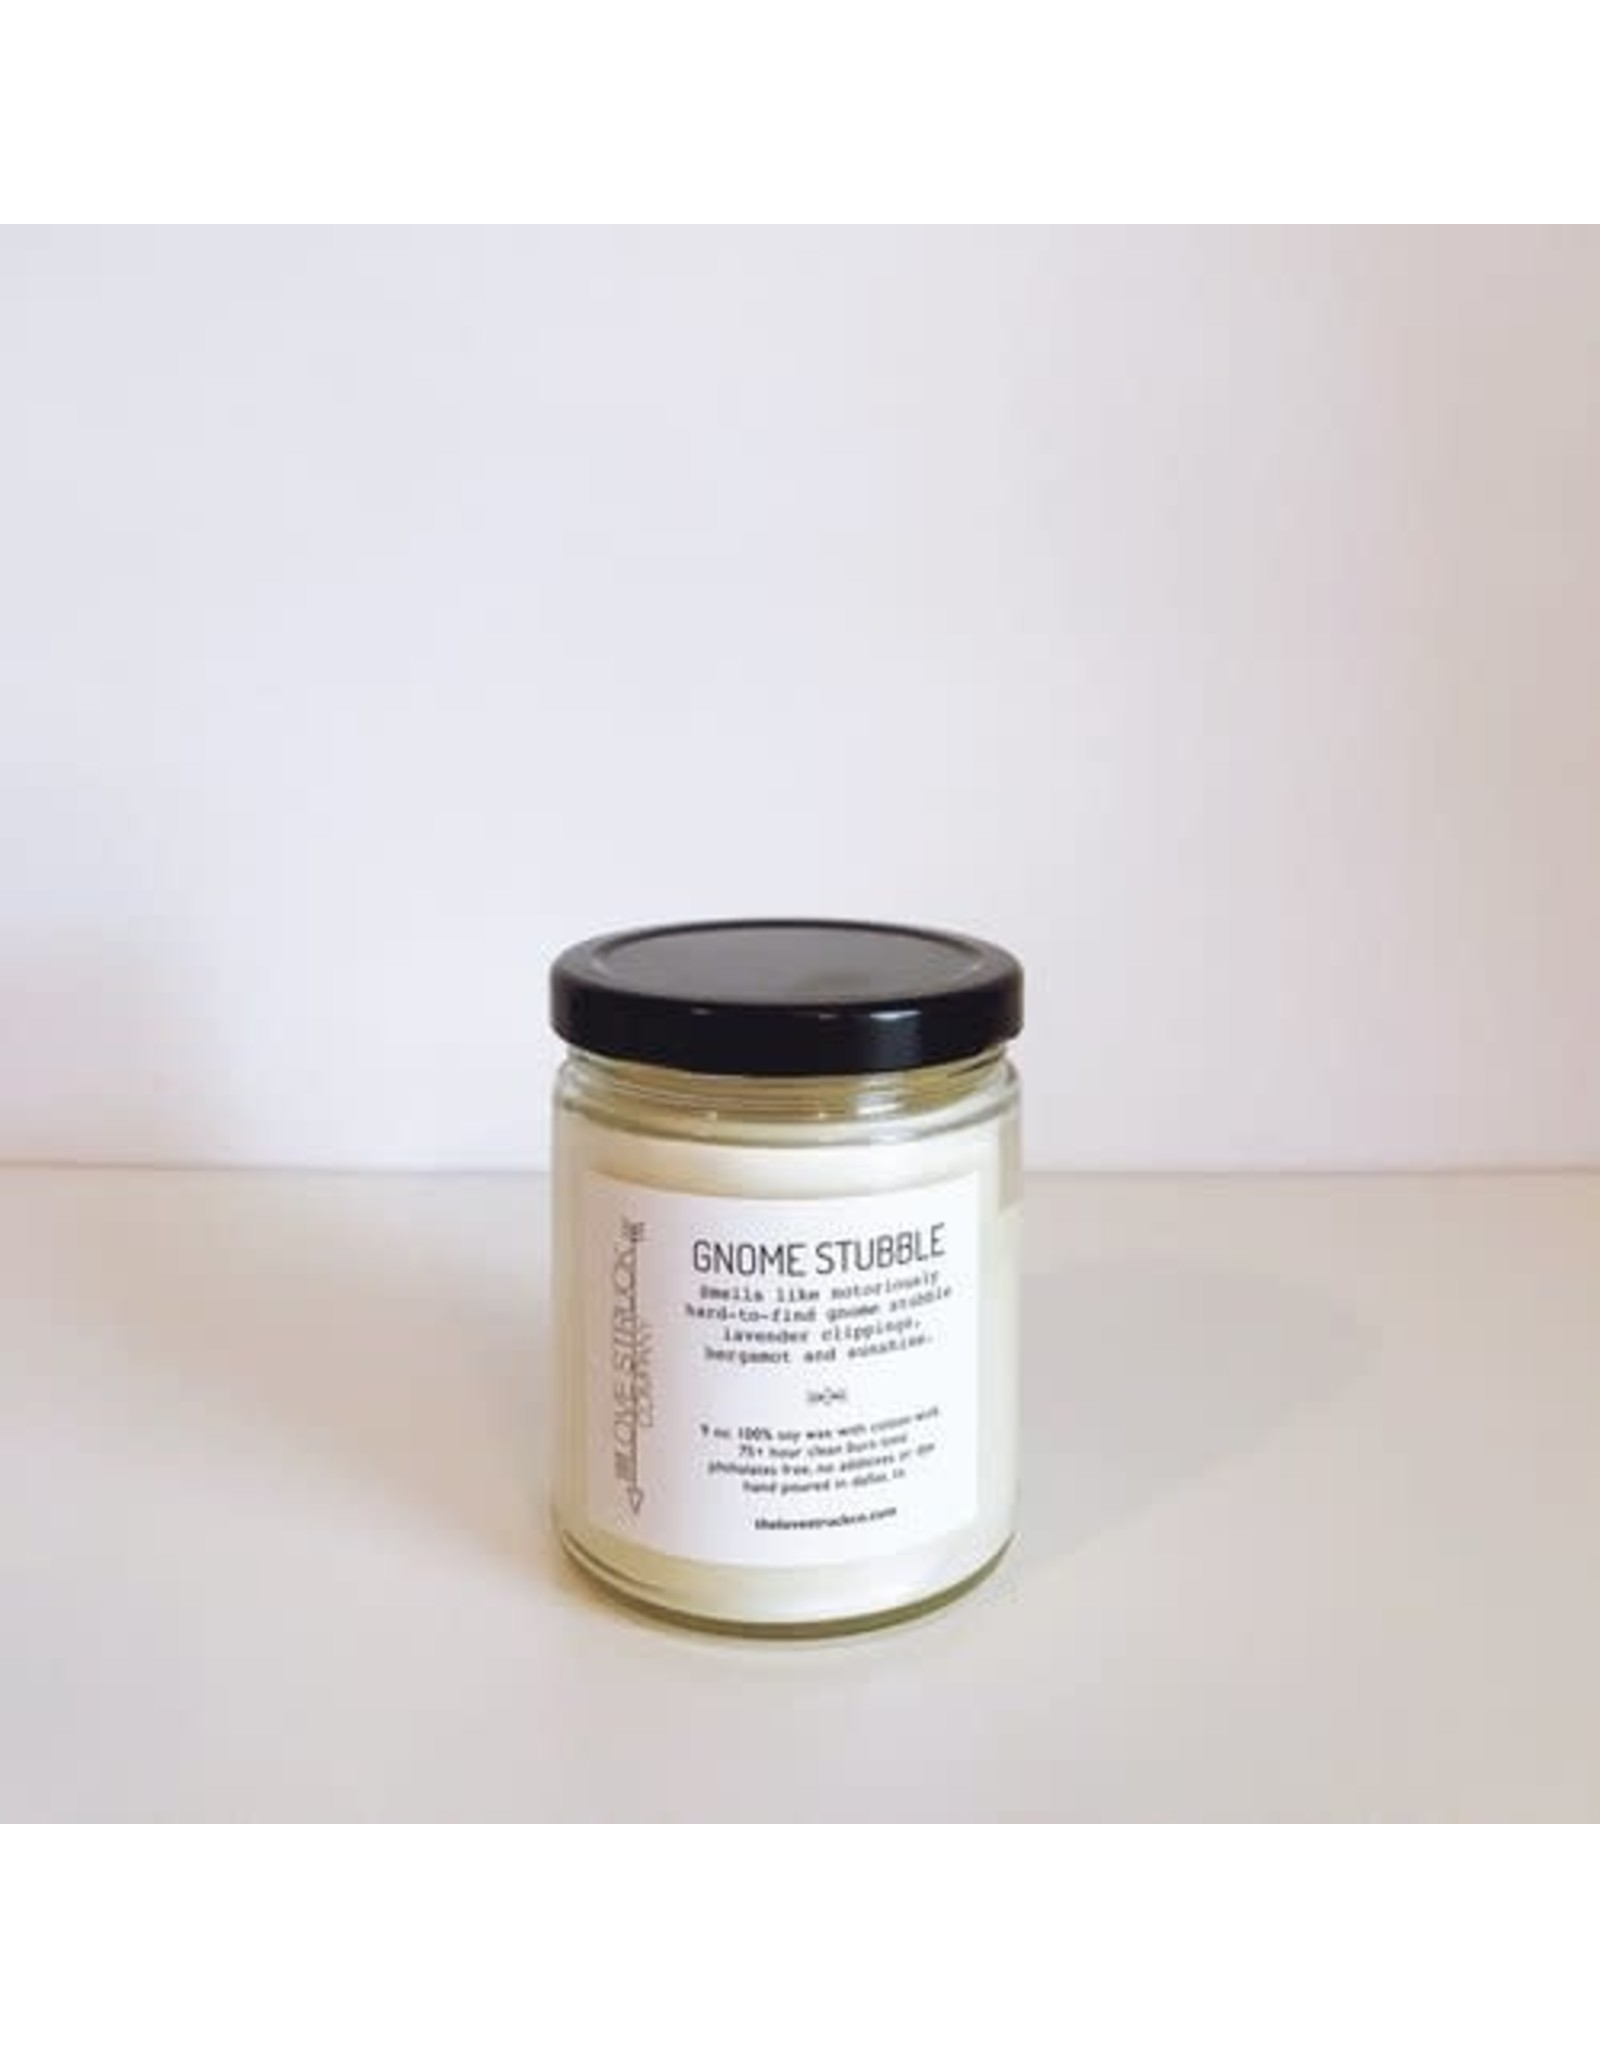 Love Struck Gnome Stubble Soy Candle